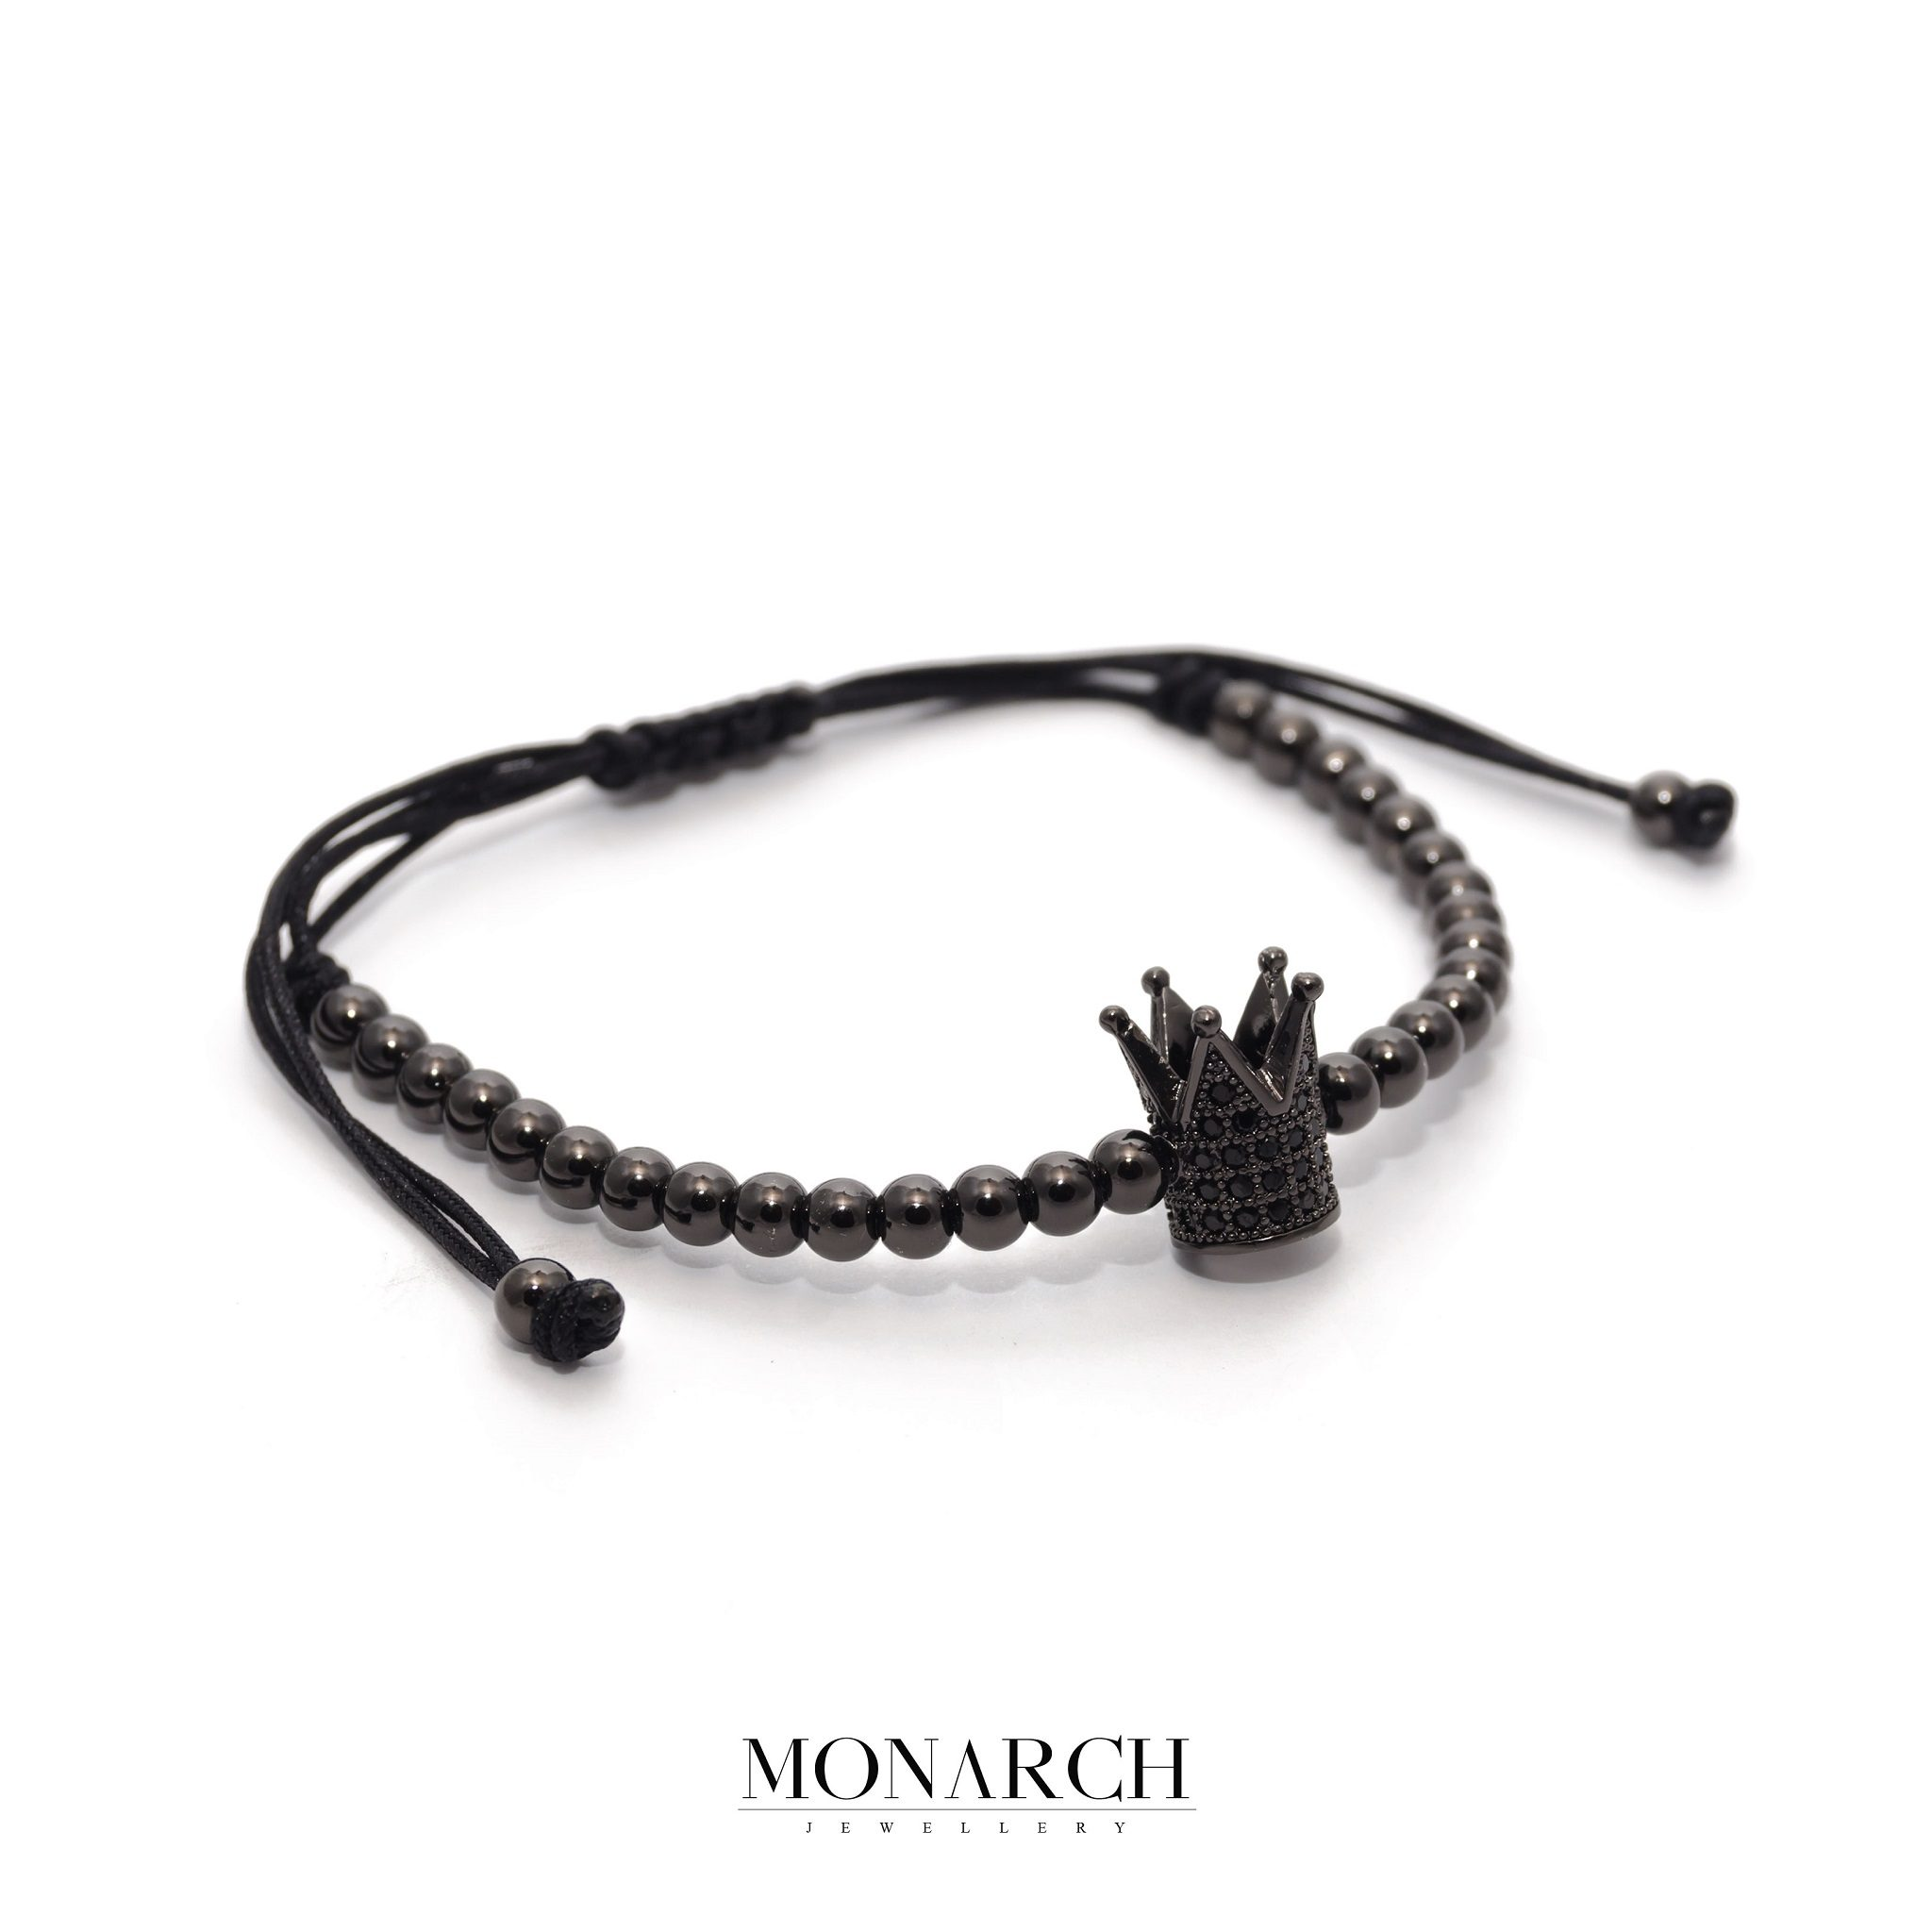 53-Monarch-Jewellery-Nero-Emperor-Bracelet-resized